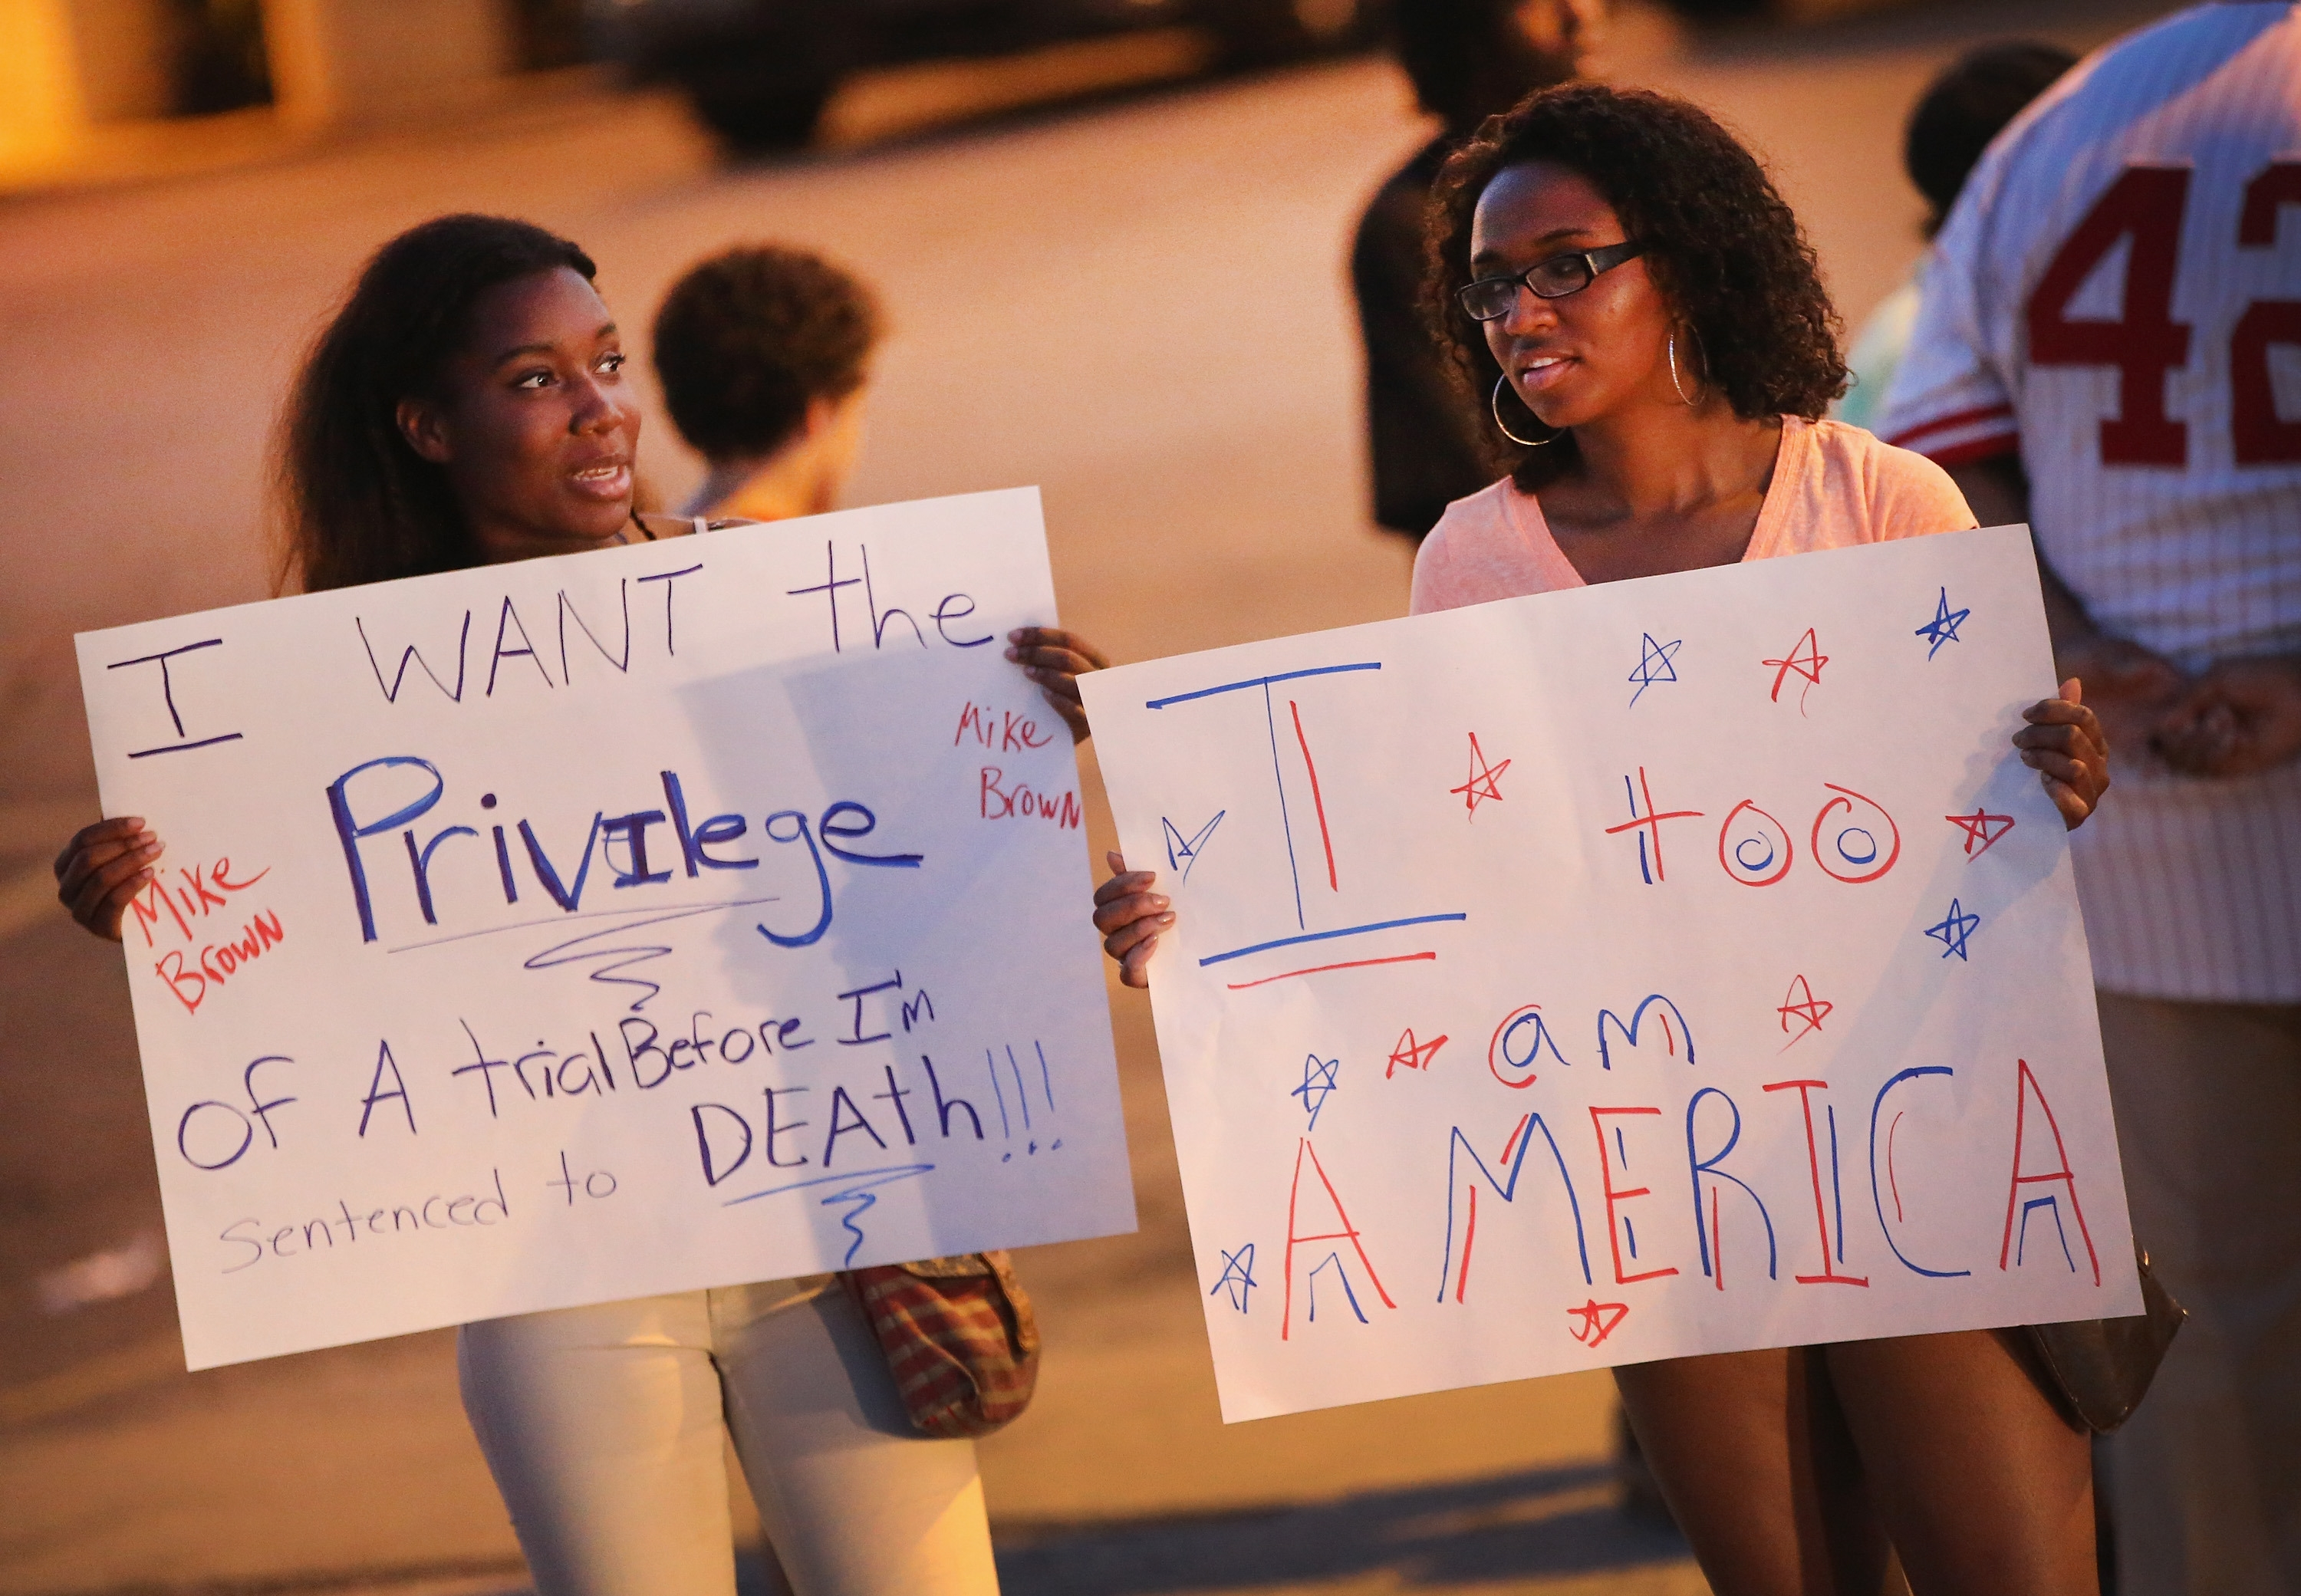 The killing of Michael Brown by an officer in Ferguson, Mo., has raised questions about policing practices across America. (Getty Images)